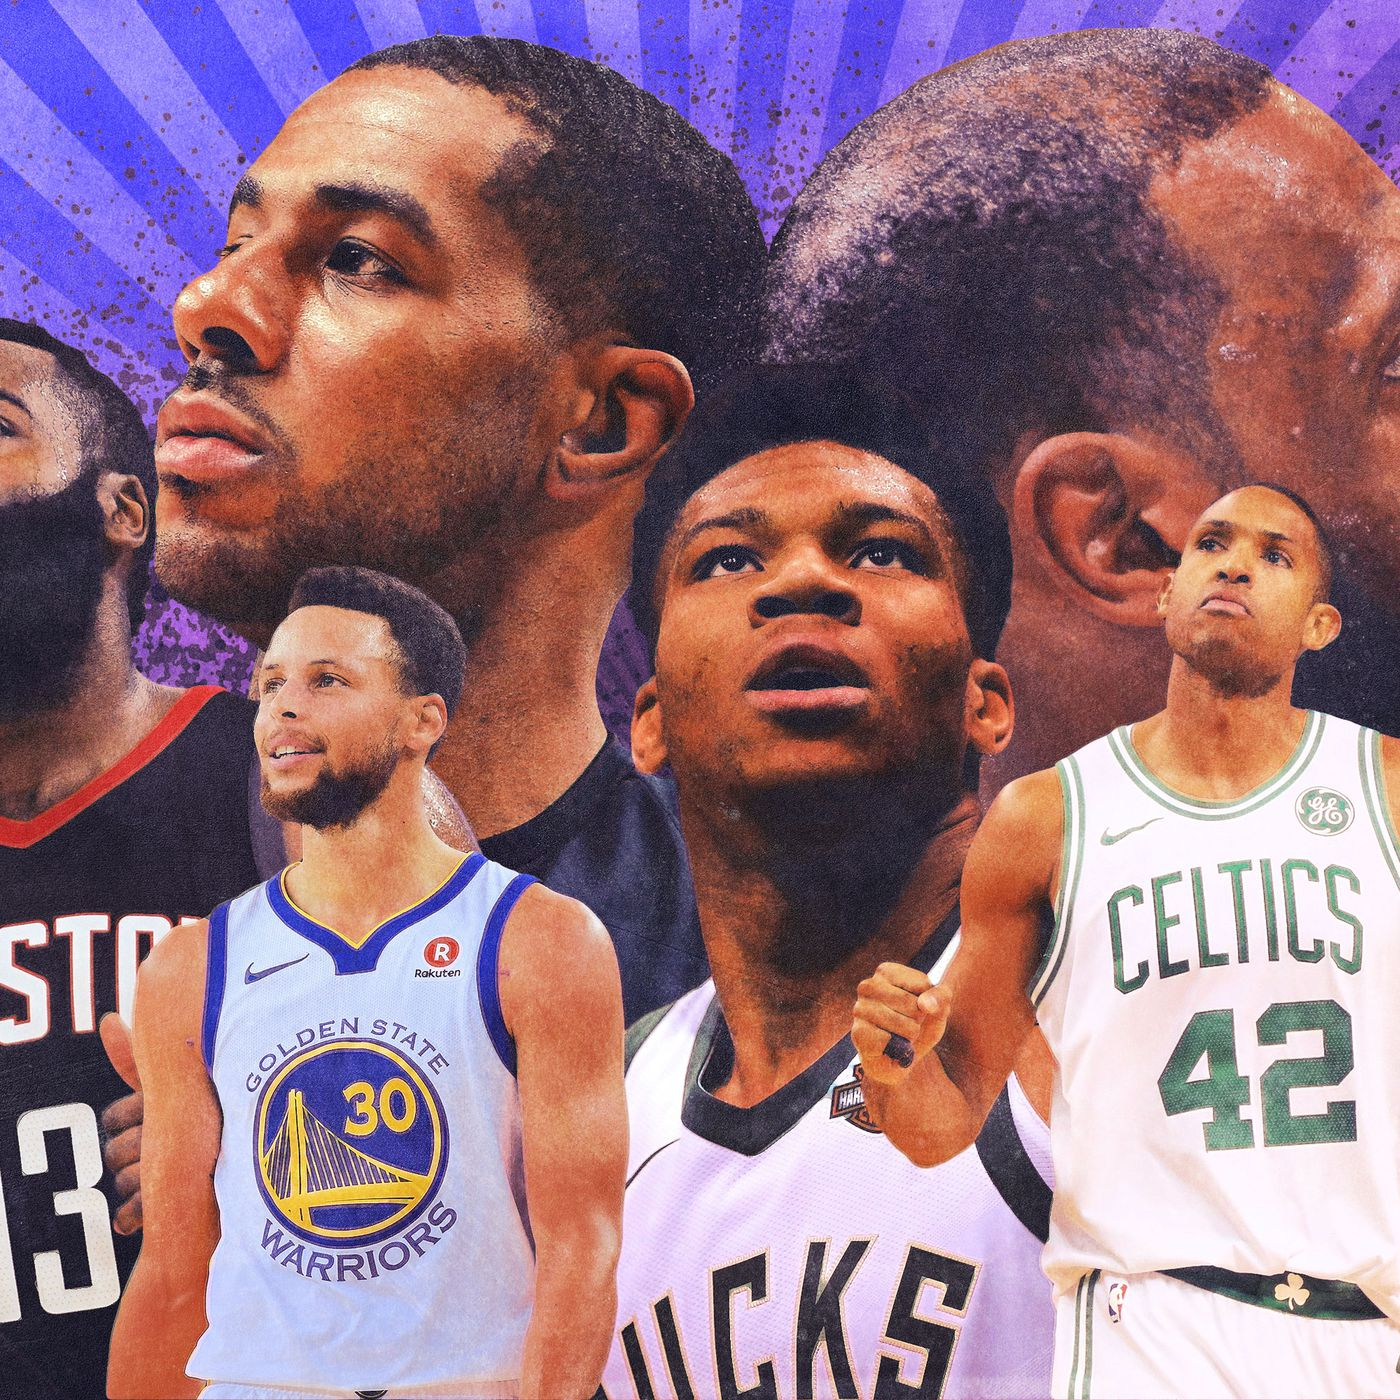 f5a82b39a746 Picking the 2018 All-Star Game Starters - The Ringer